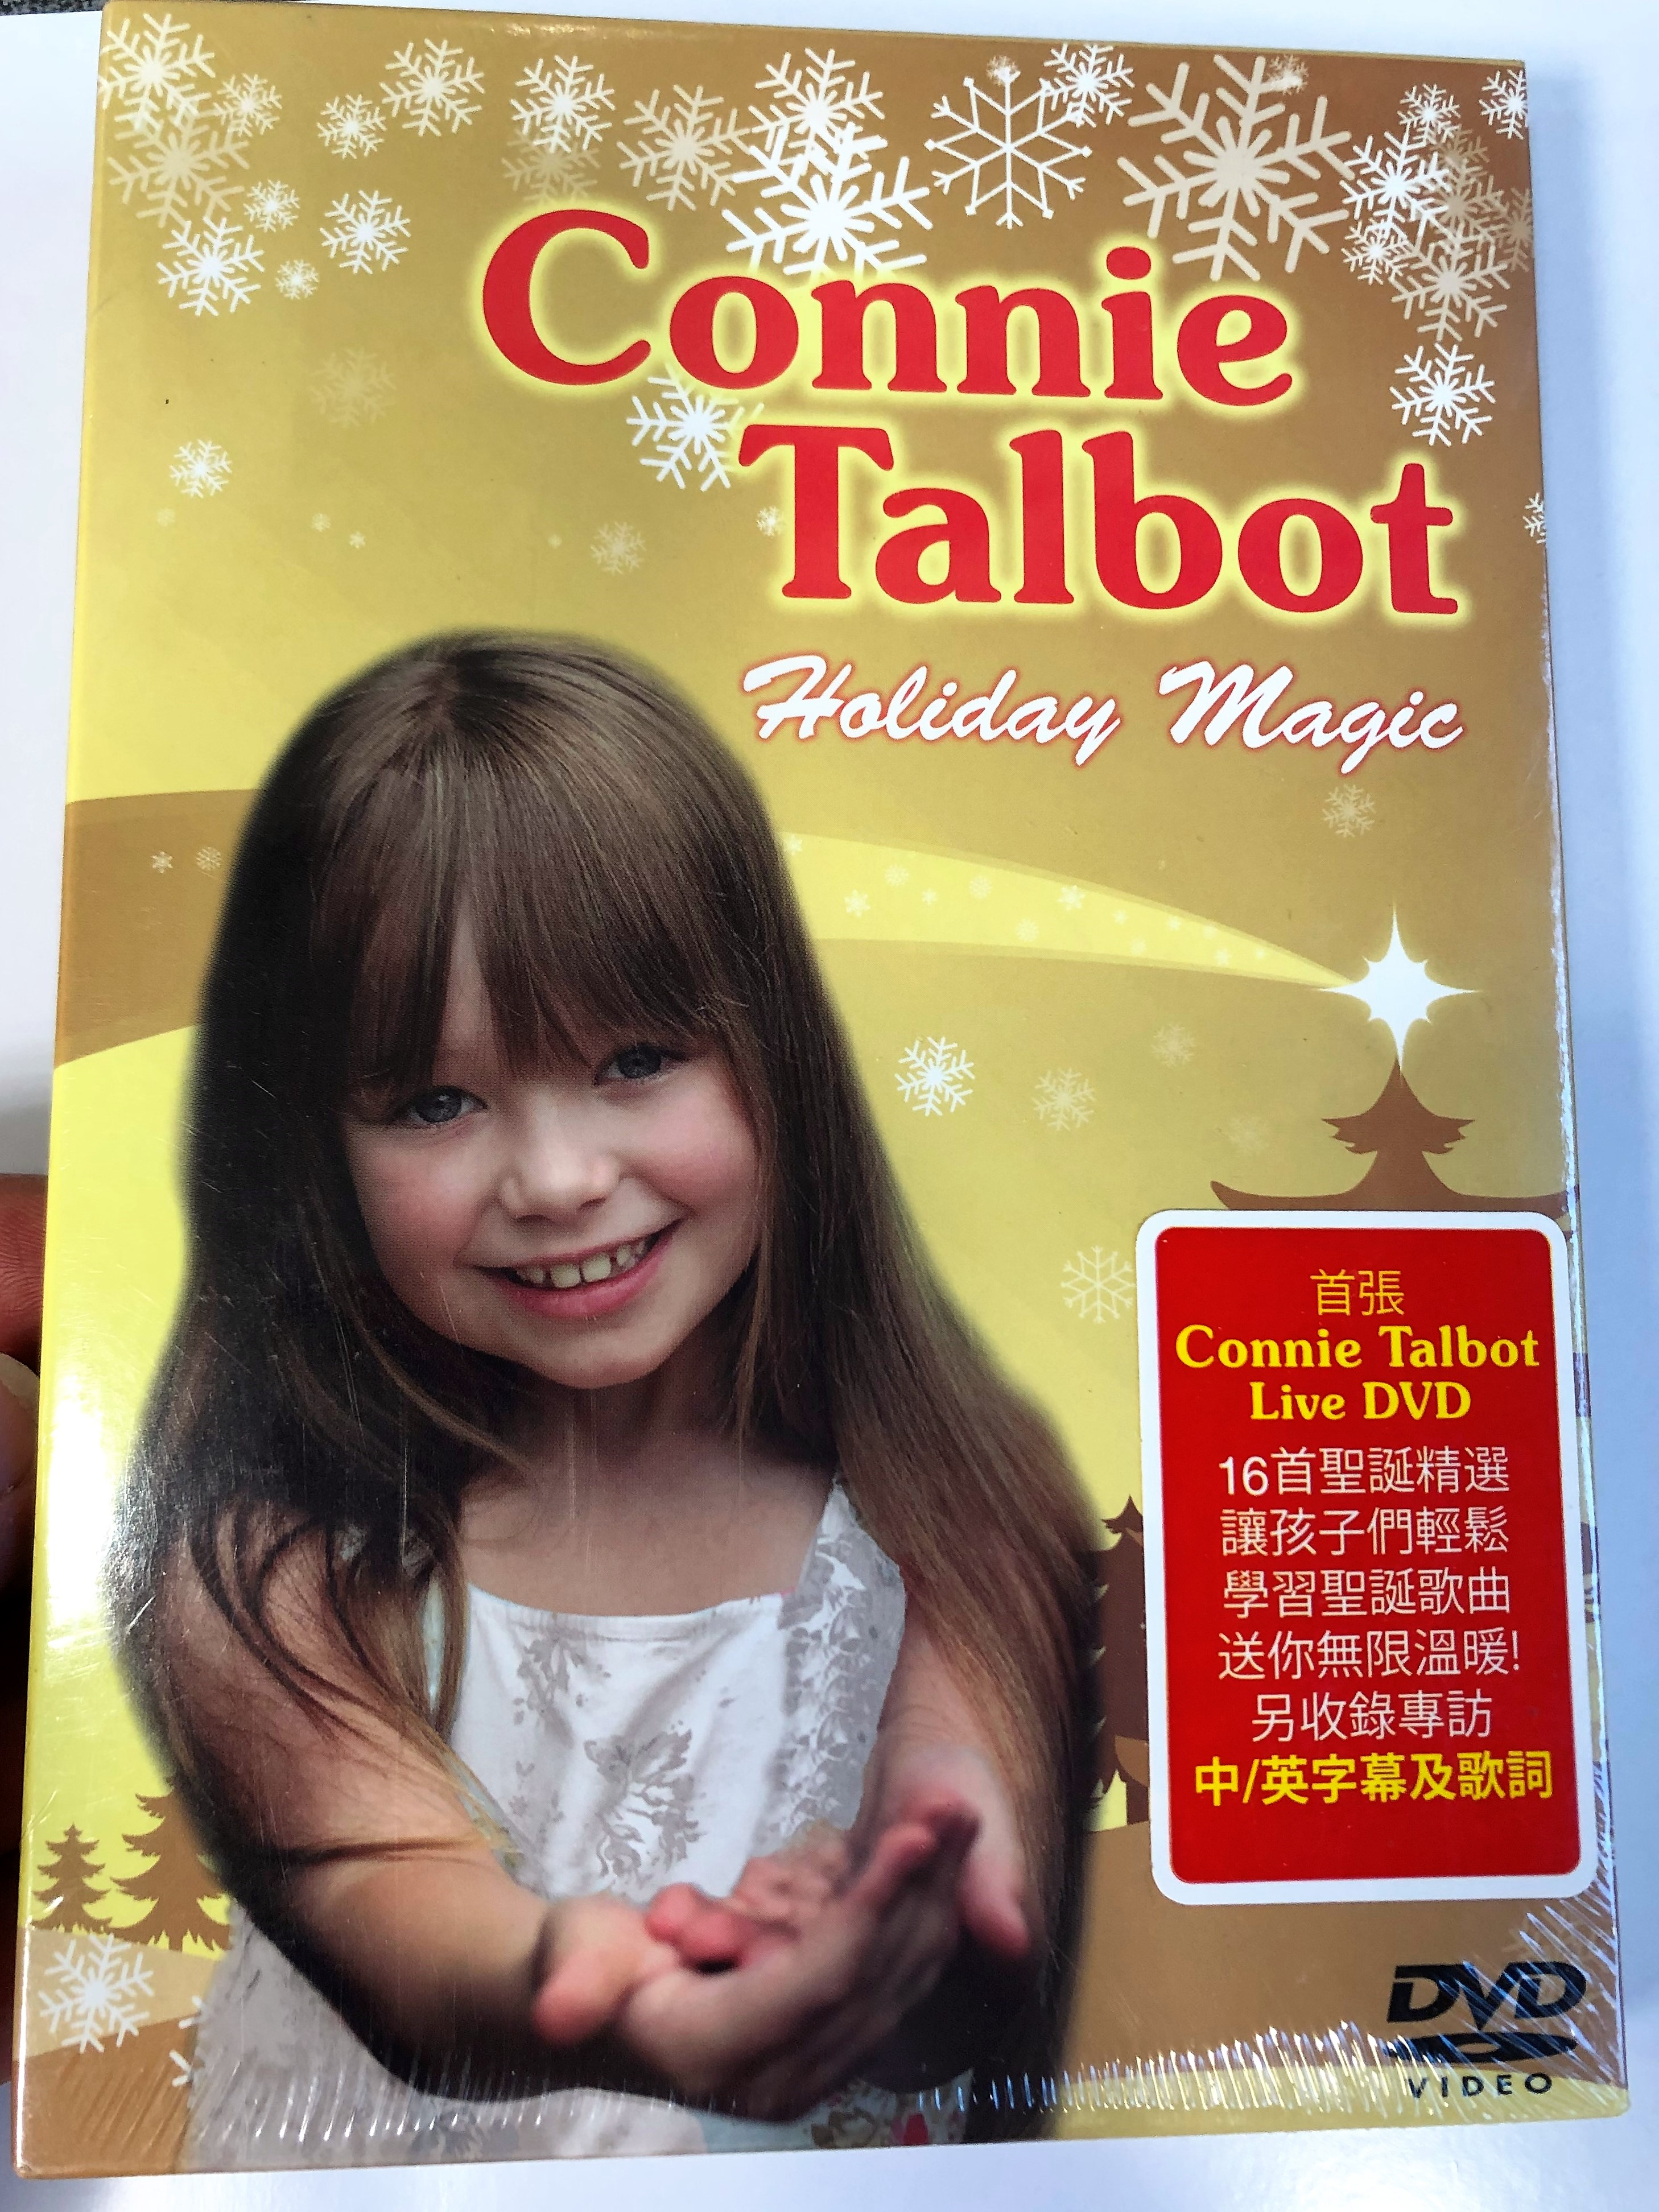 holiday-magic-live-dvd-2009-starring-connie-talbot-directed-by-ben-payavis-ii-and-neil-prisco-hong-kong-version-1-.jpg